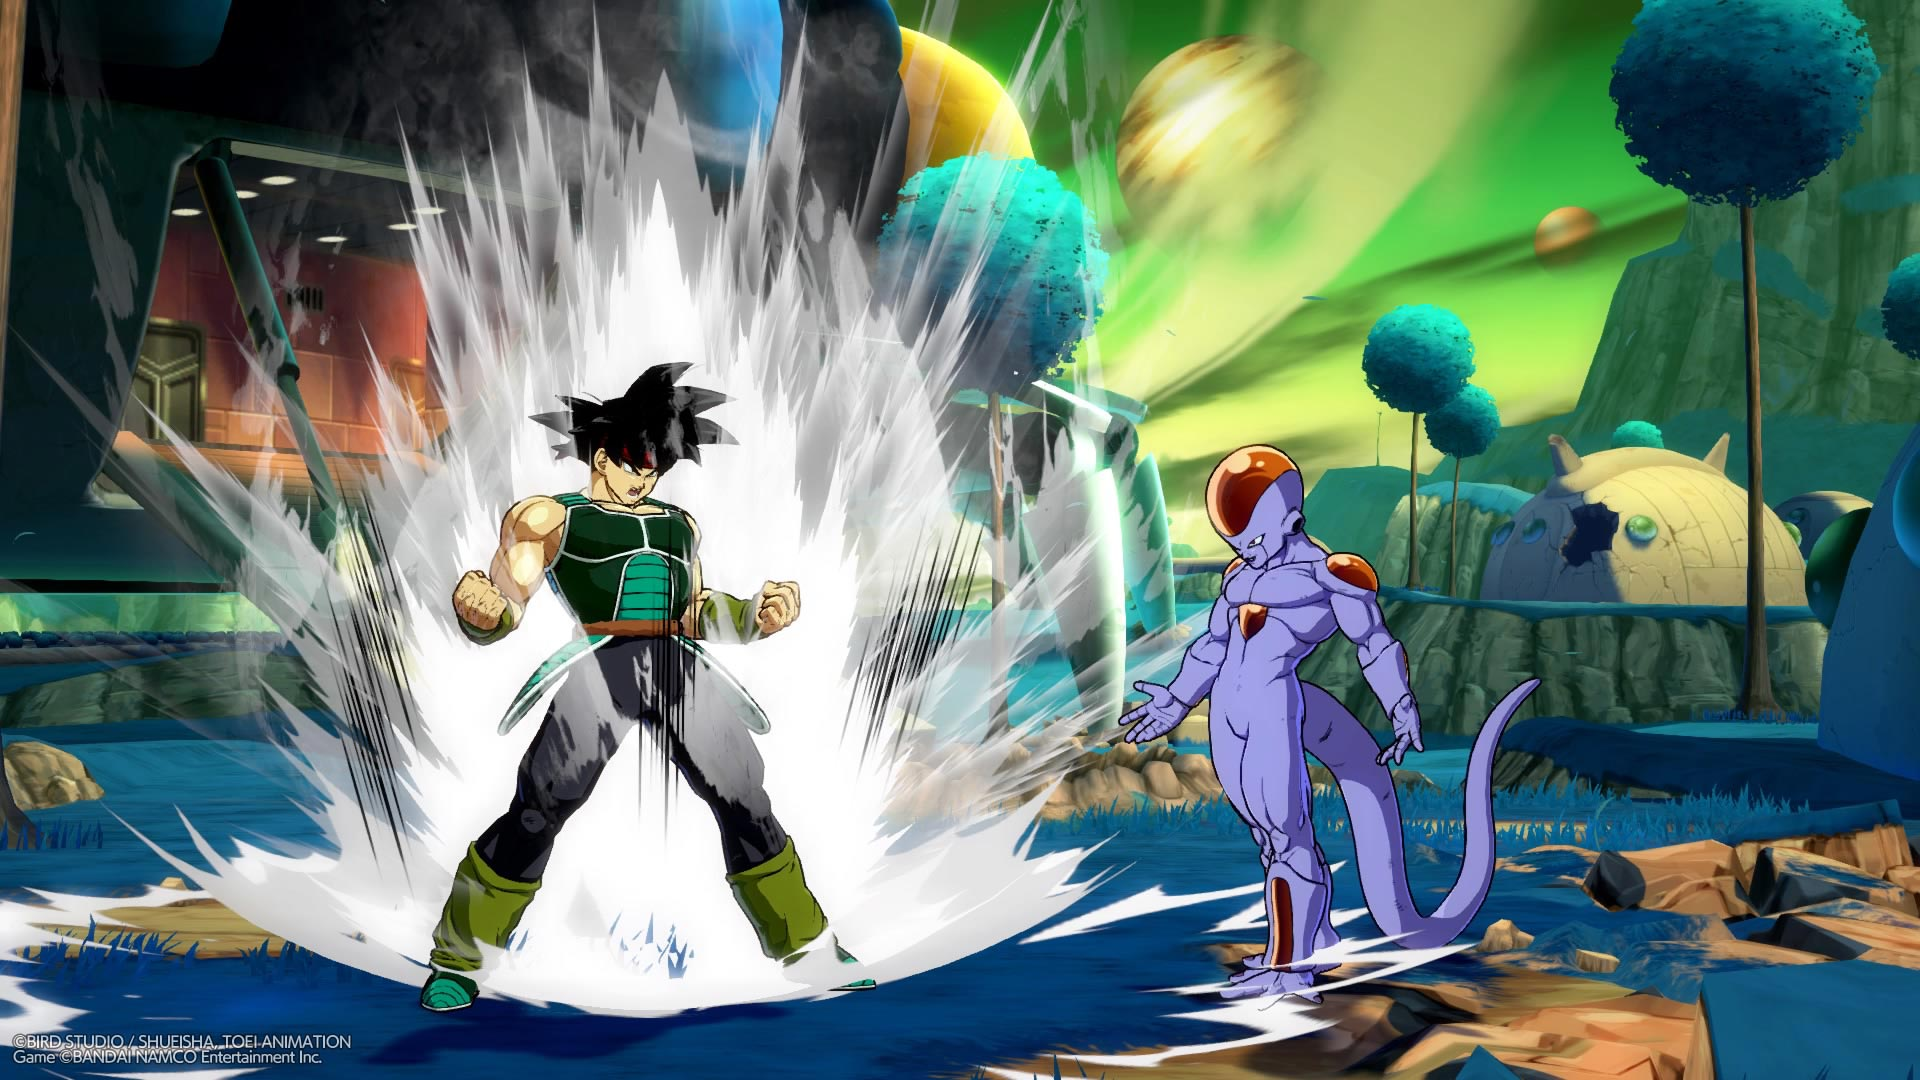 Broly and Bardock screenshots in Dragon Ball FighterZ 11 out of 12 image gallery